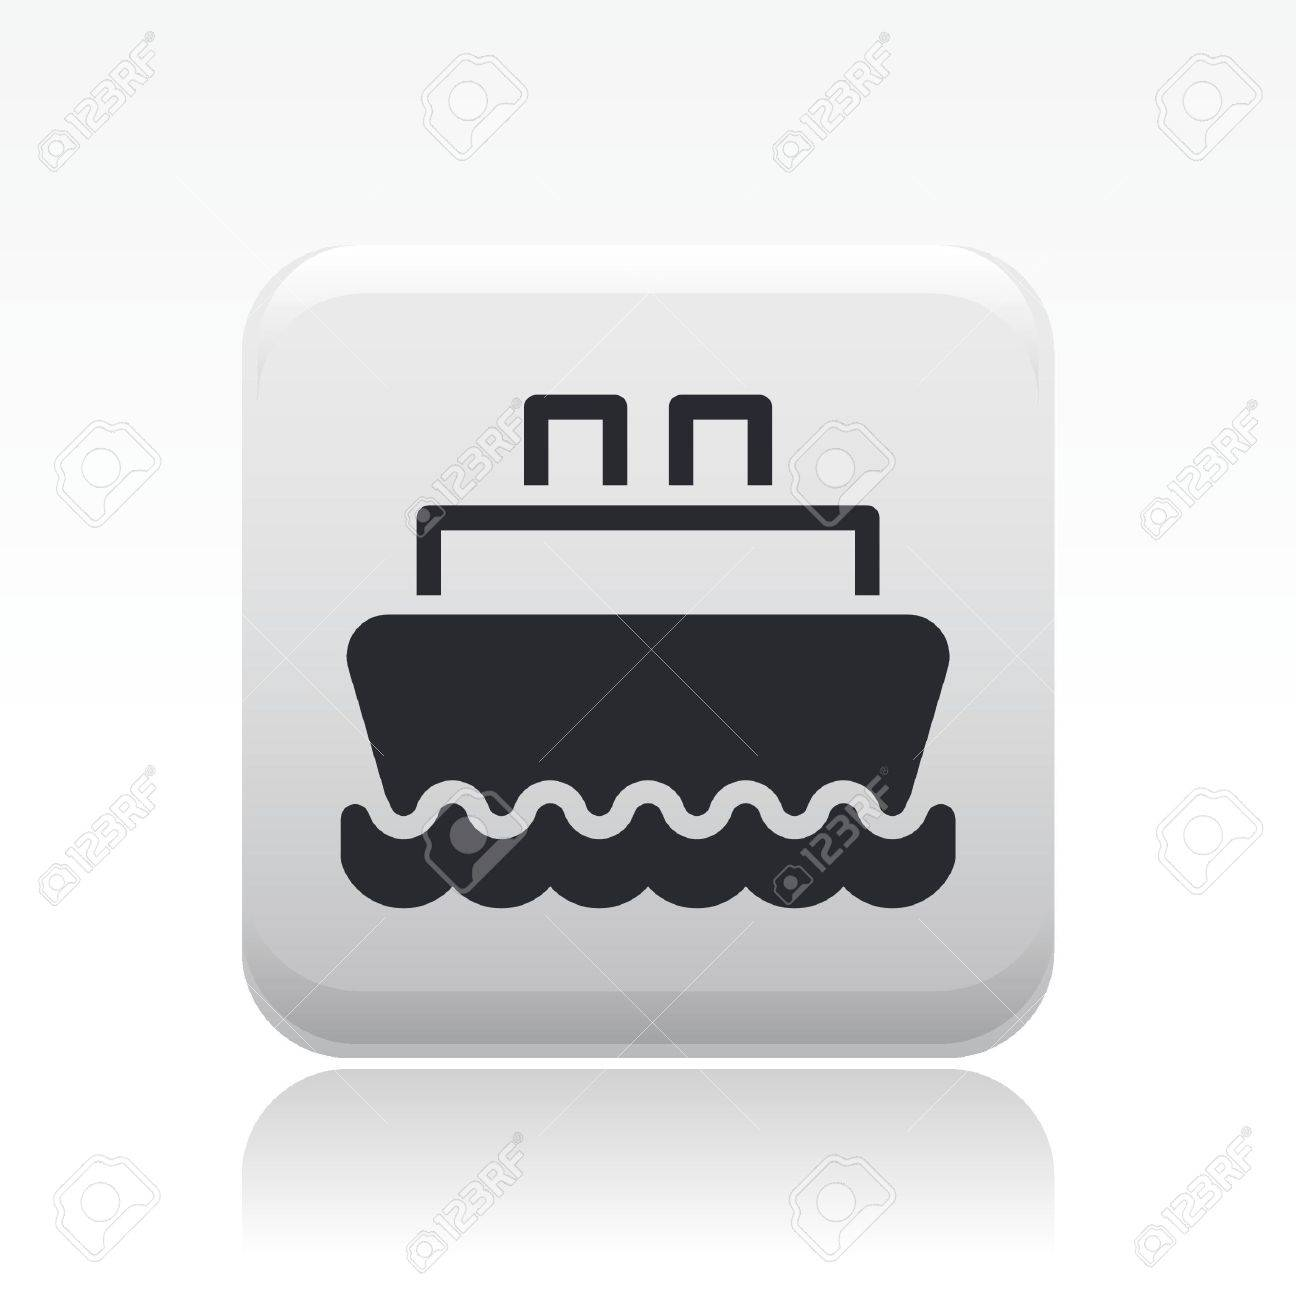 Vector illustration of single isolated boat icon Stock Vector - 12127947